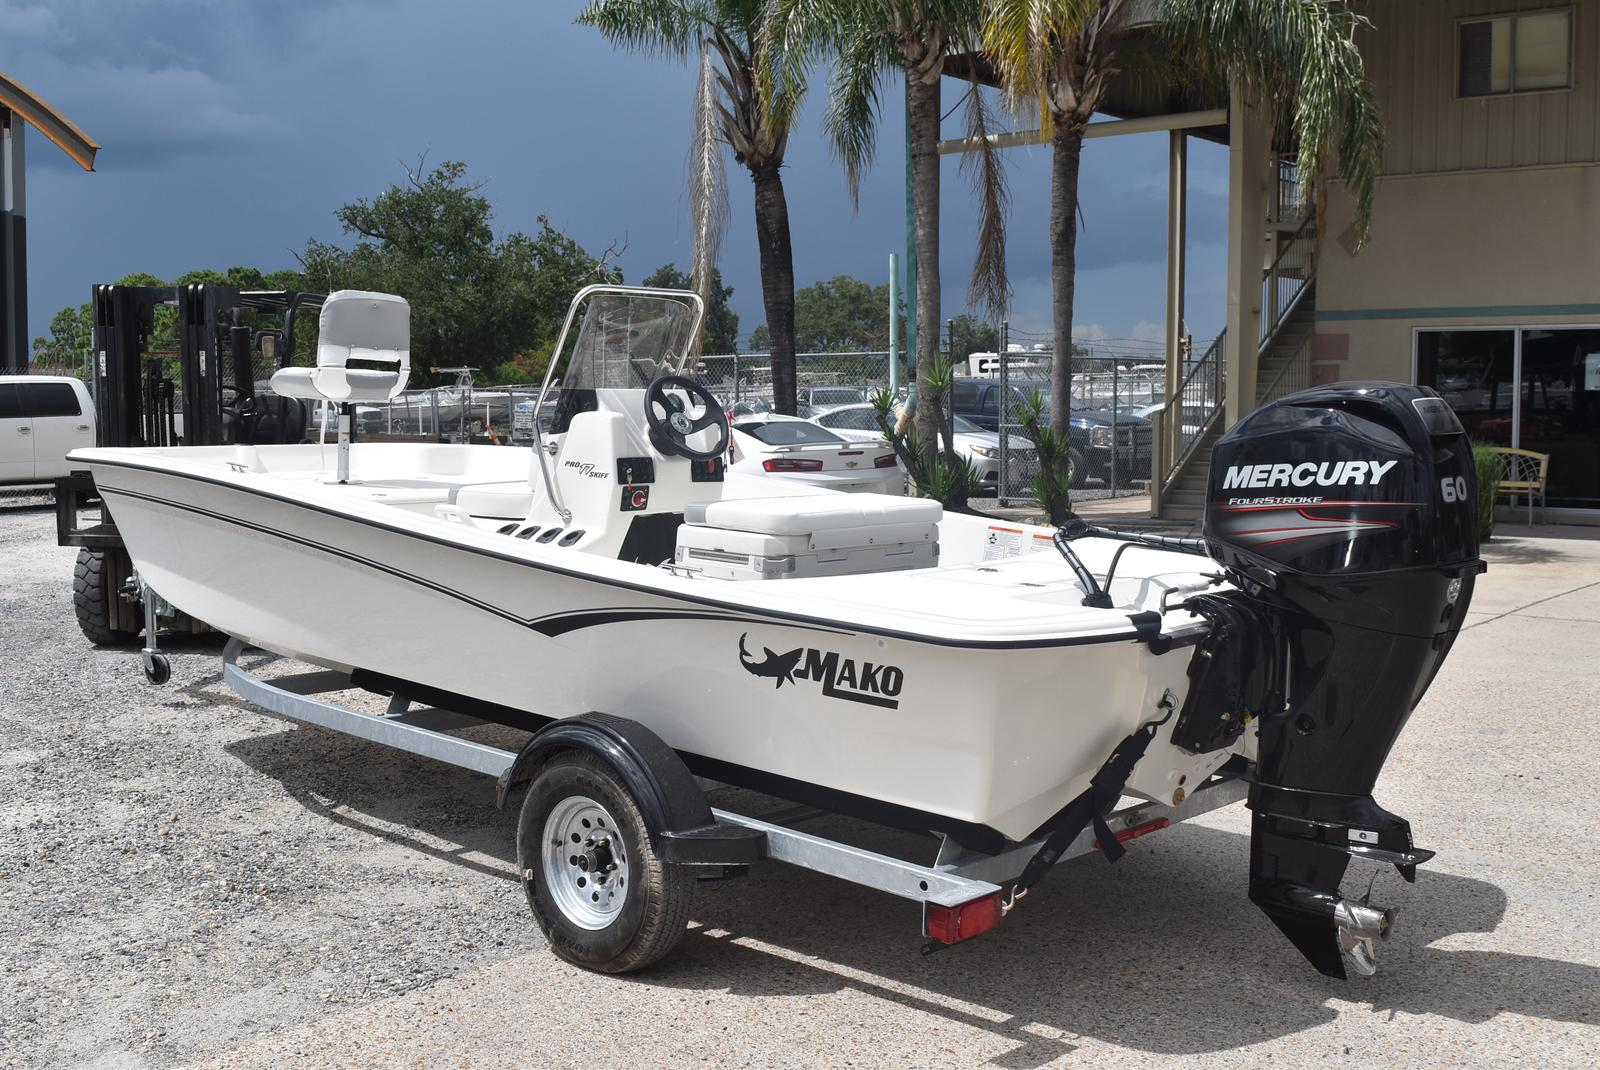 2020 Mako boat for sale, model of the boat is Pro Skiff 17, 75 ELPT & Image # 204 of 702